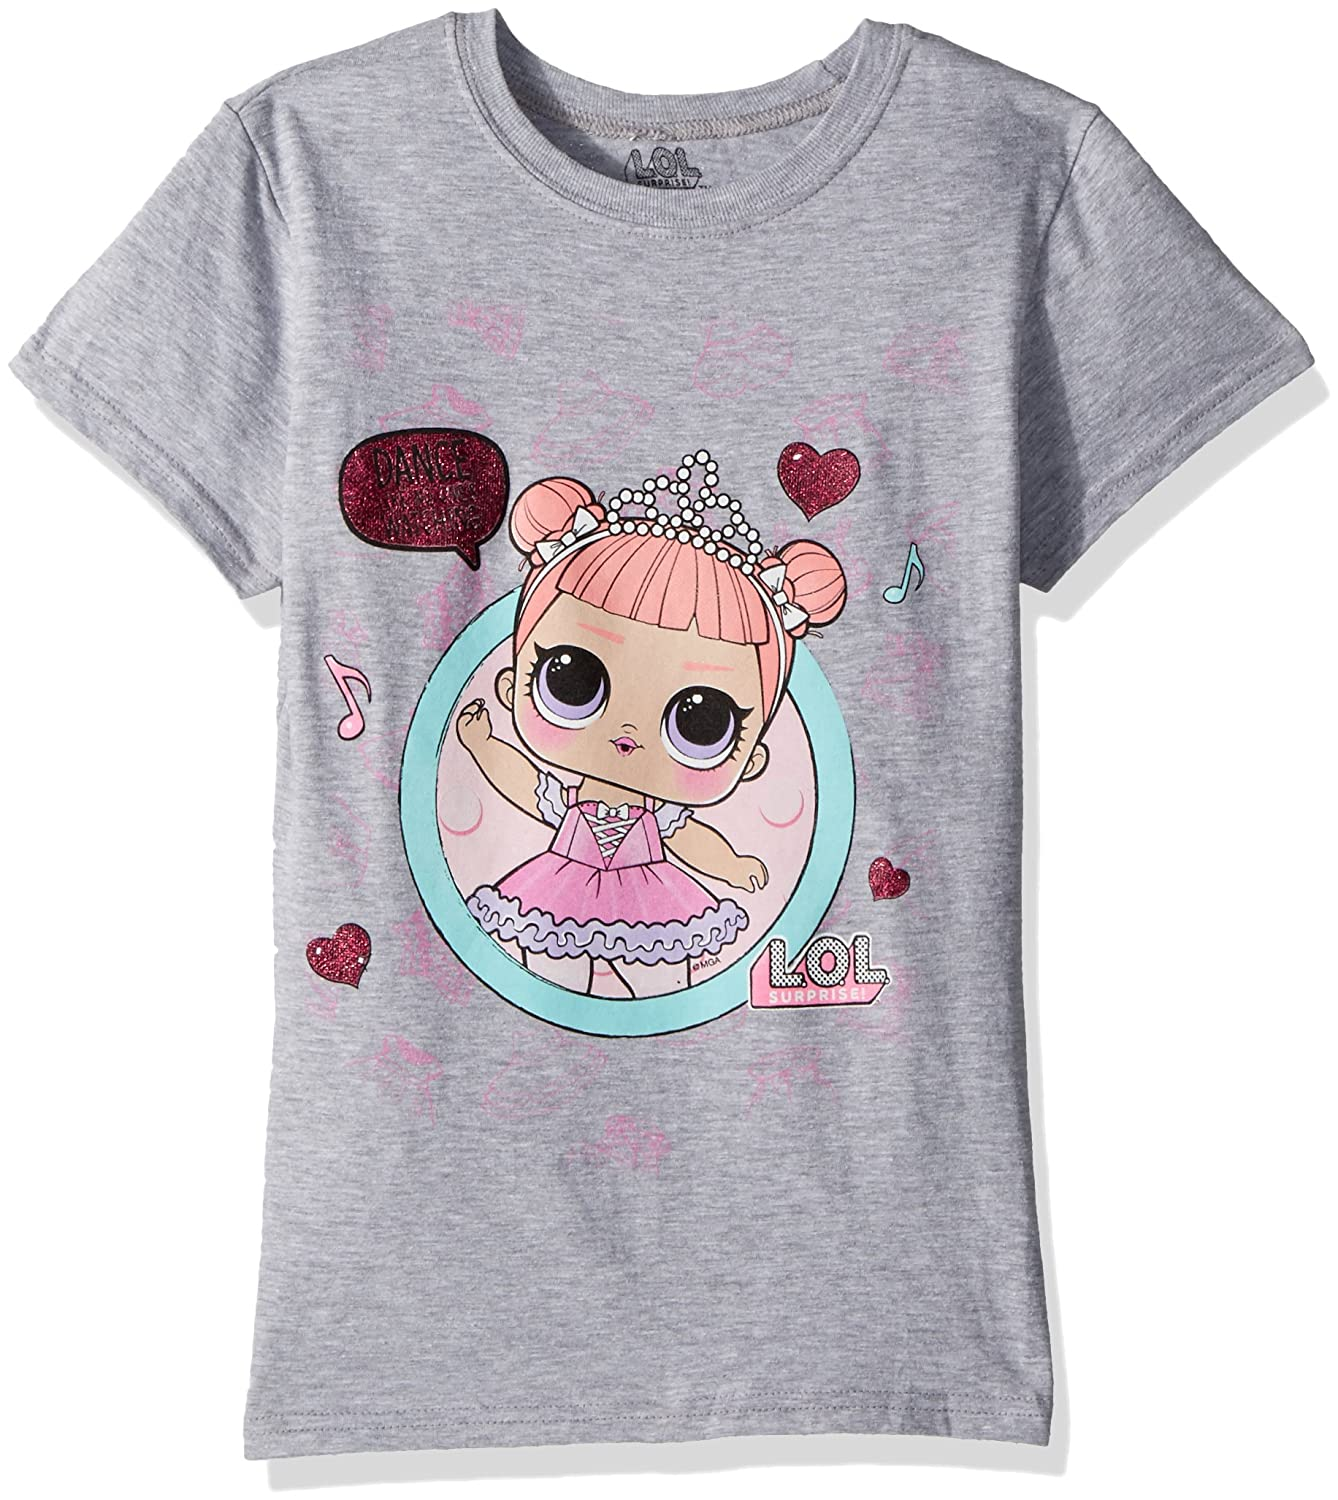 L.O.L. Surprise! Girls' Dance Club Center Stage Short Sleeve T-Shirt